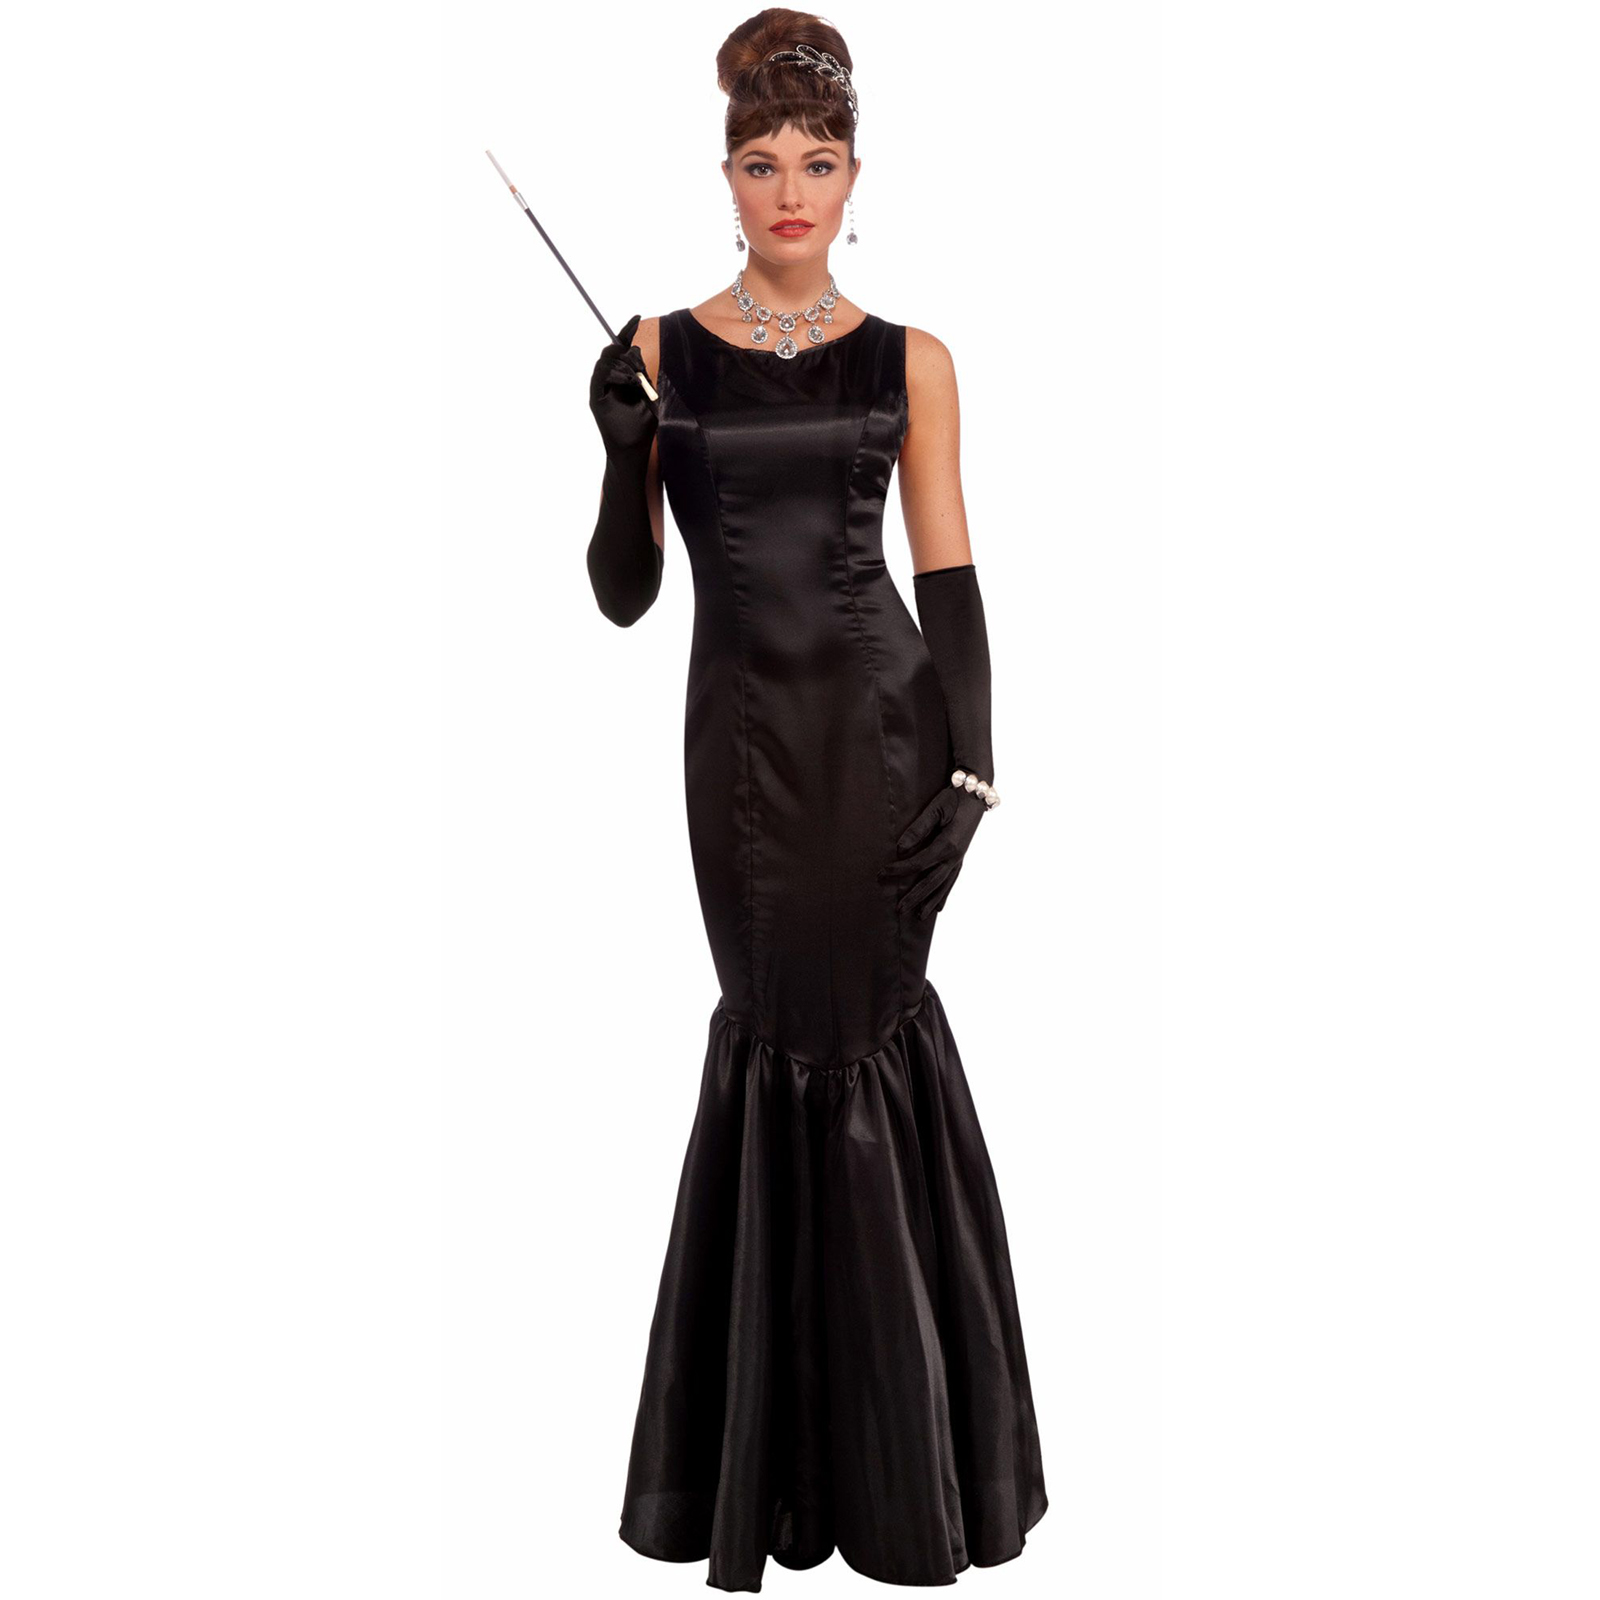 bf2a62360 Womens Vintage Hollywood High Society Adult Costume